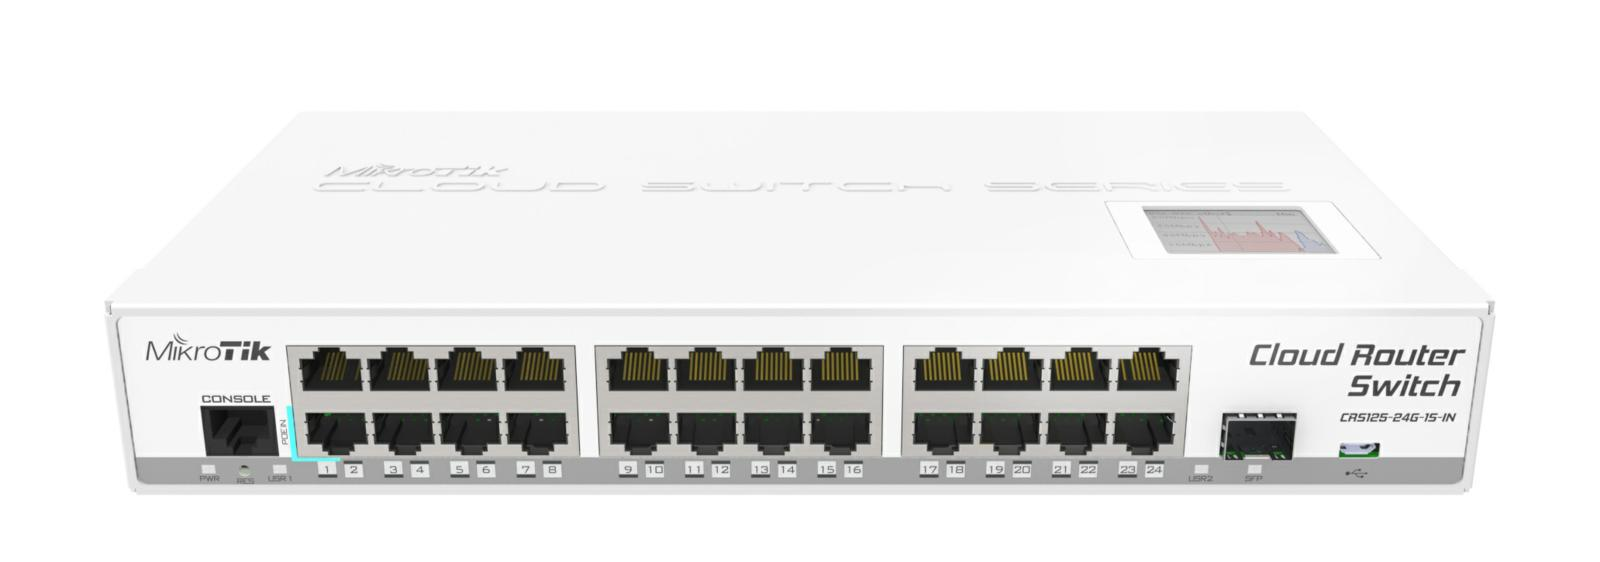 SICE Distributore Ufficiale  Switches CRS125-24G-1S-IN with Atheros AR9344CPU 128MBRAM 24GETH 1xSFP L5 | CRS125-24G-1S-IN